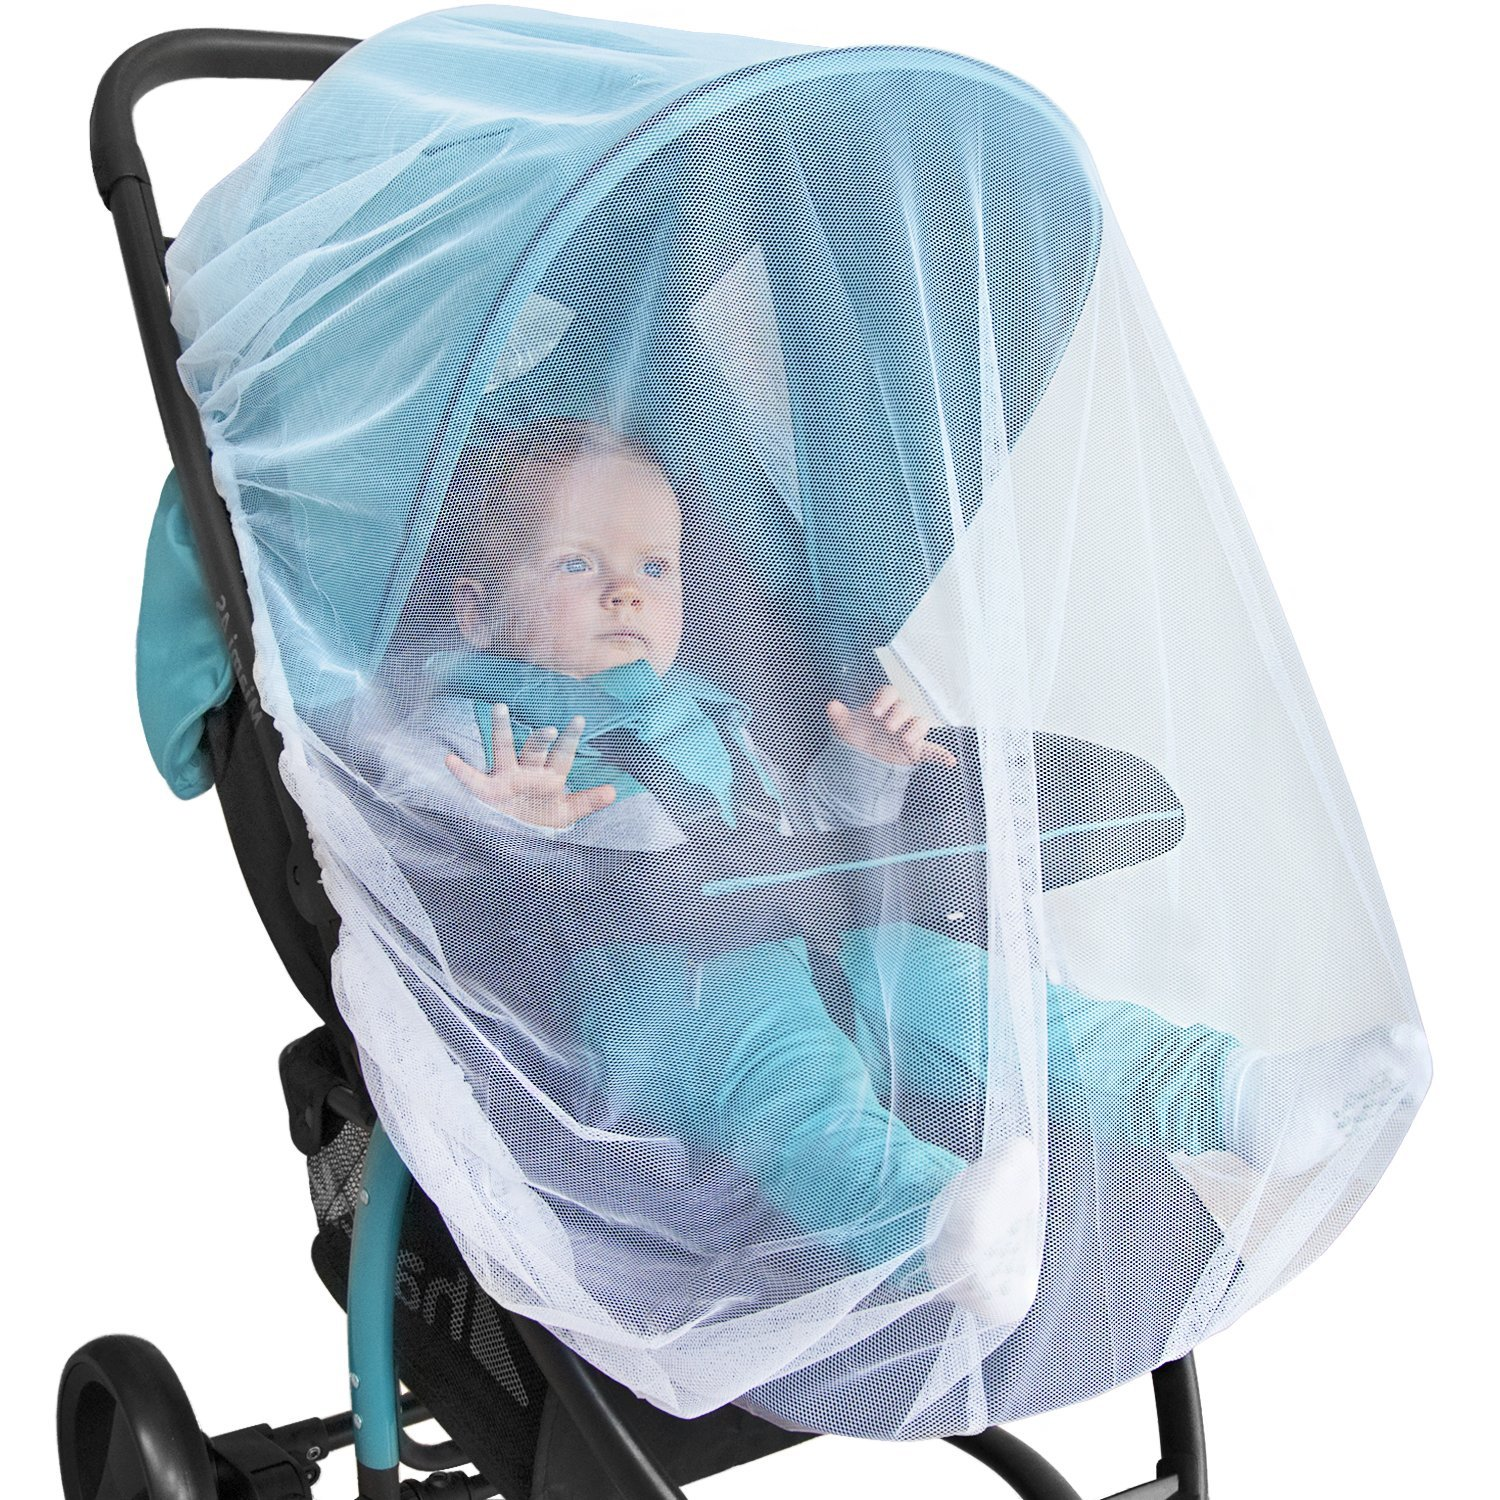 Amazon.com : FakeFace Baby Travel Universal Transparent